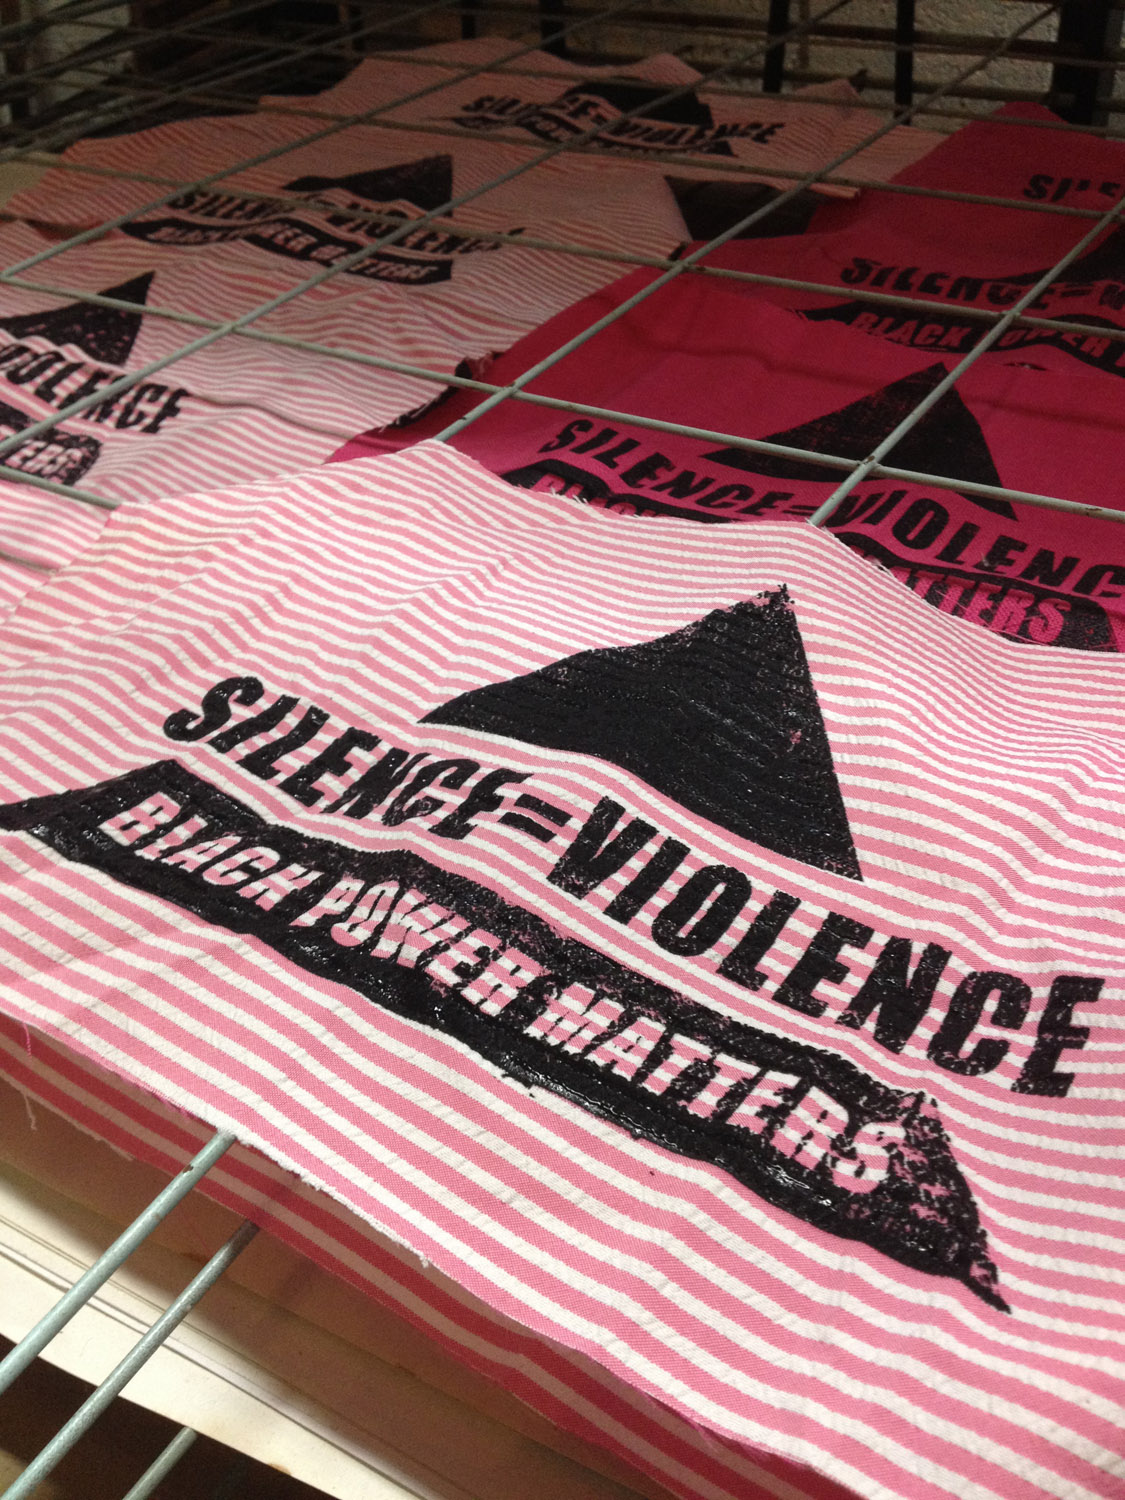 silence is violence patches.jpg